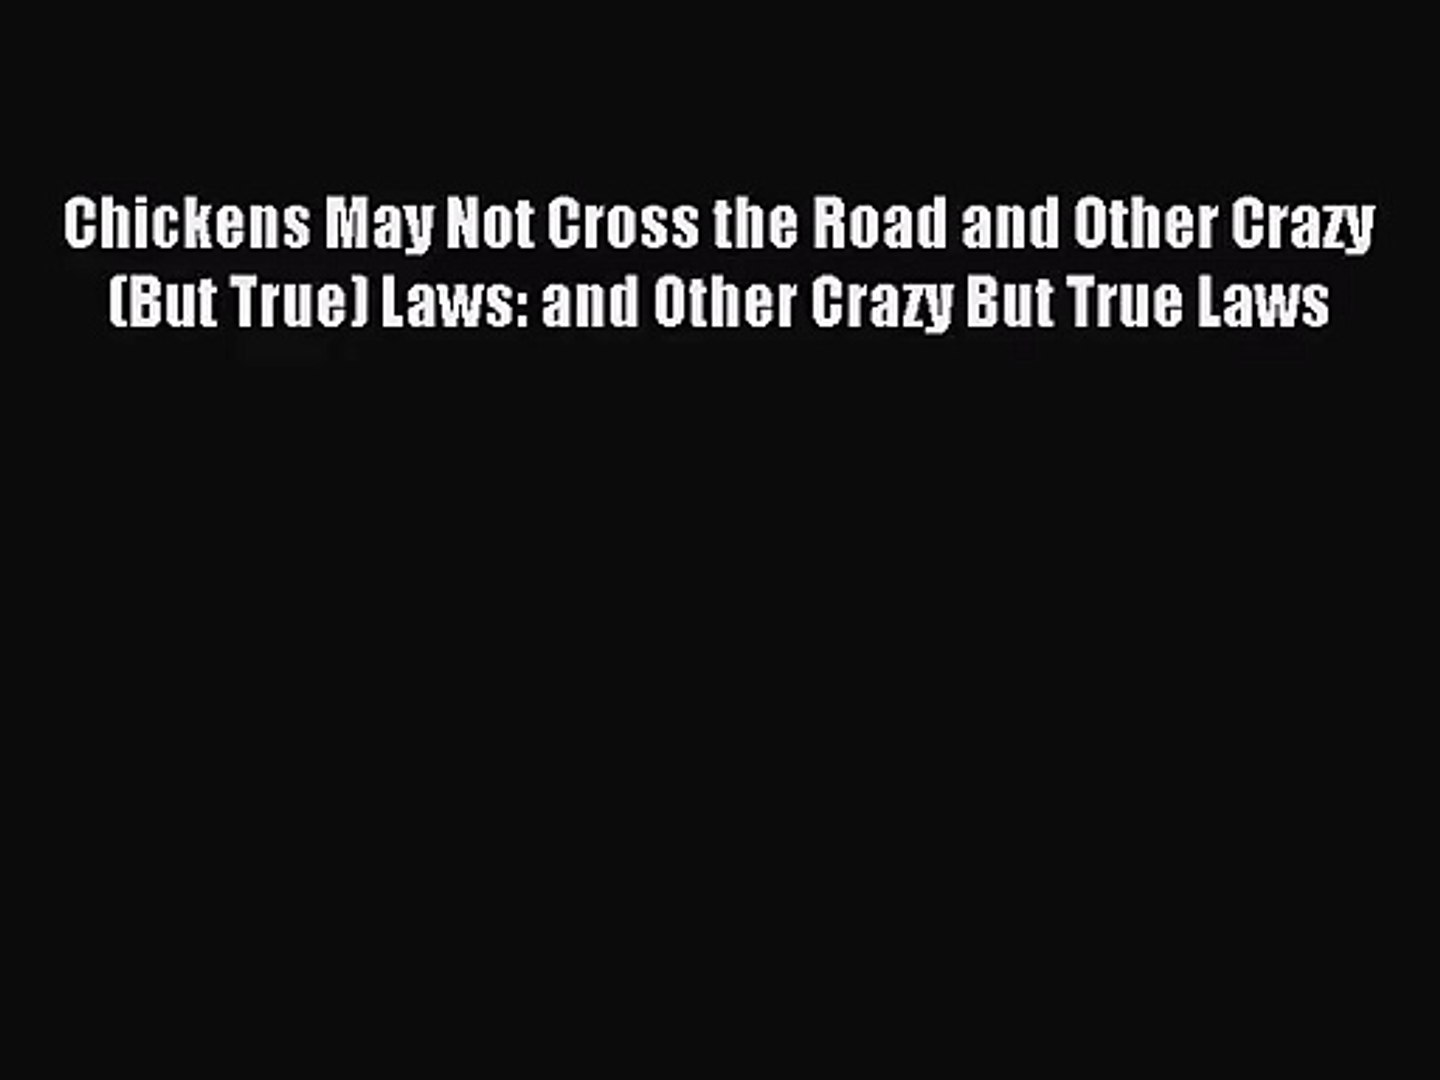 Download Chickens May Not Cross the Road and Other Crazy(But True) Laws: and Other Crazy But